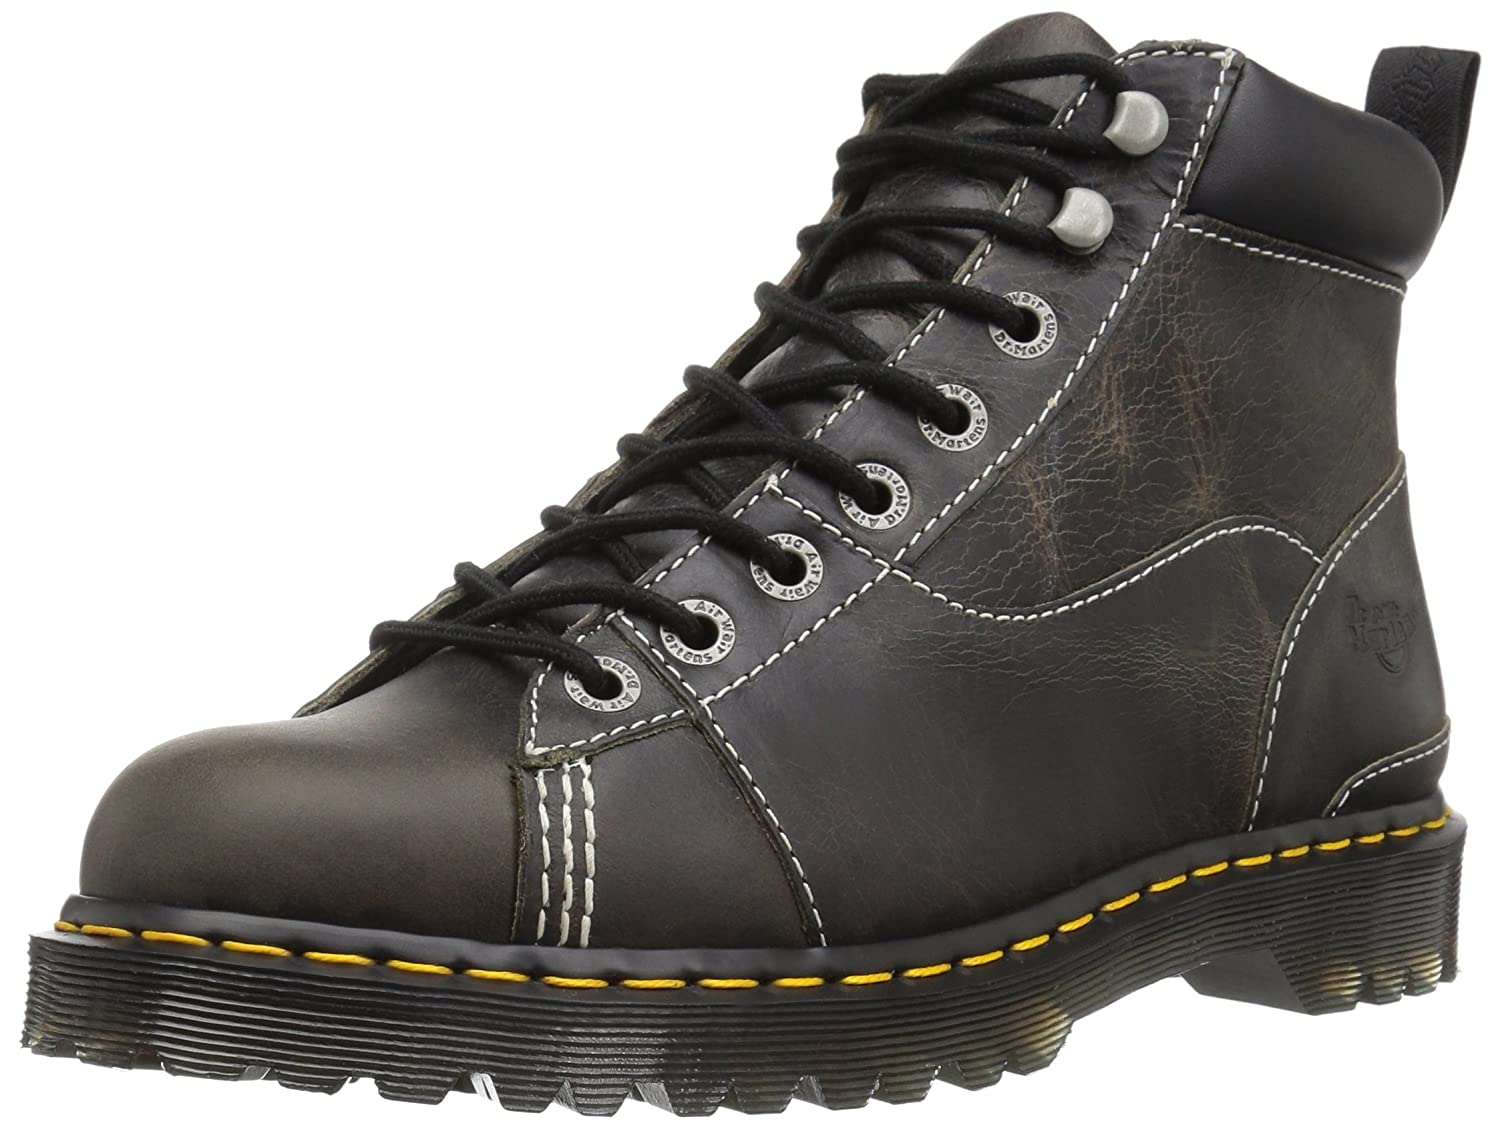 Dr. Martens Alderton Black Greenland Construction Boot B06X9TX79H 9 Medium UK (US Men's 10, Women's 11 US)|Black Greenland